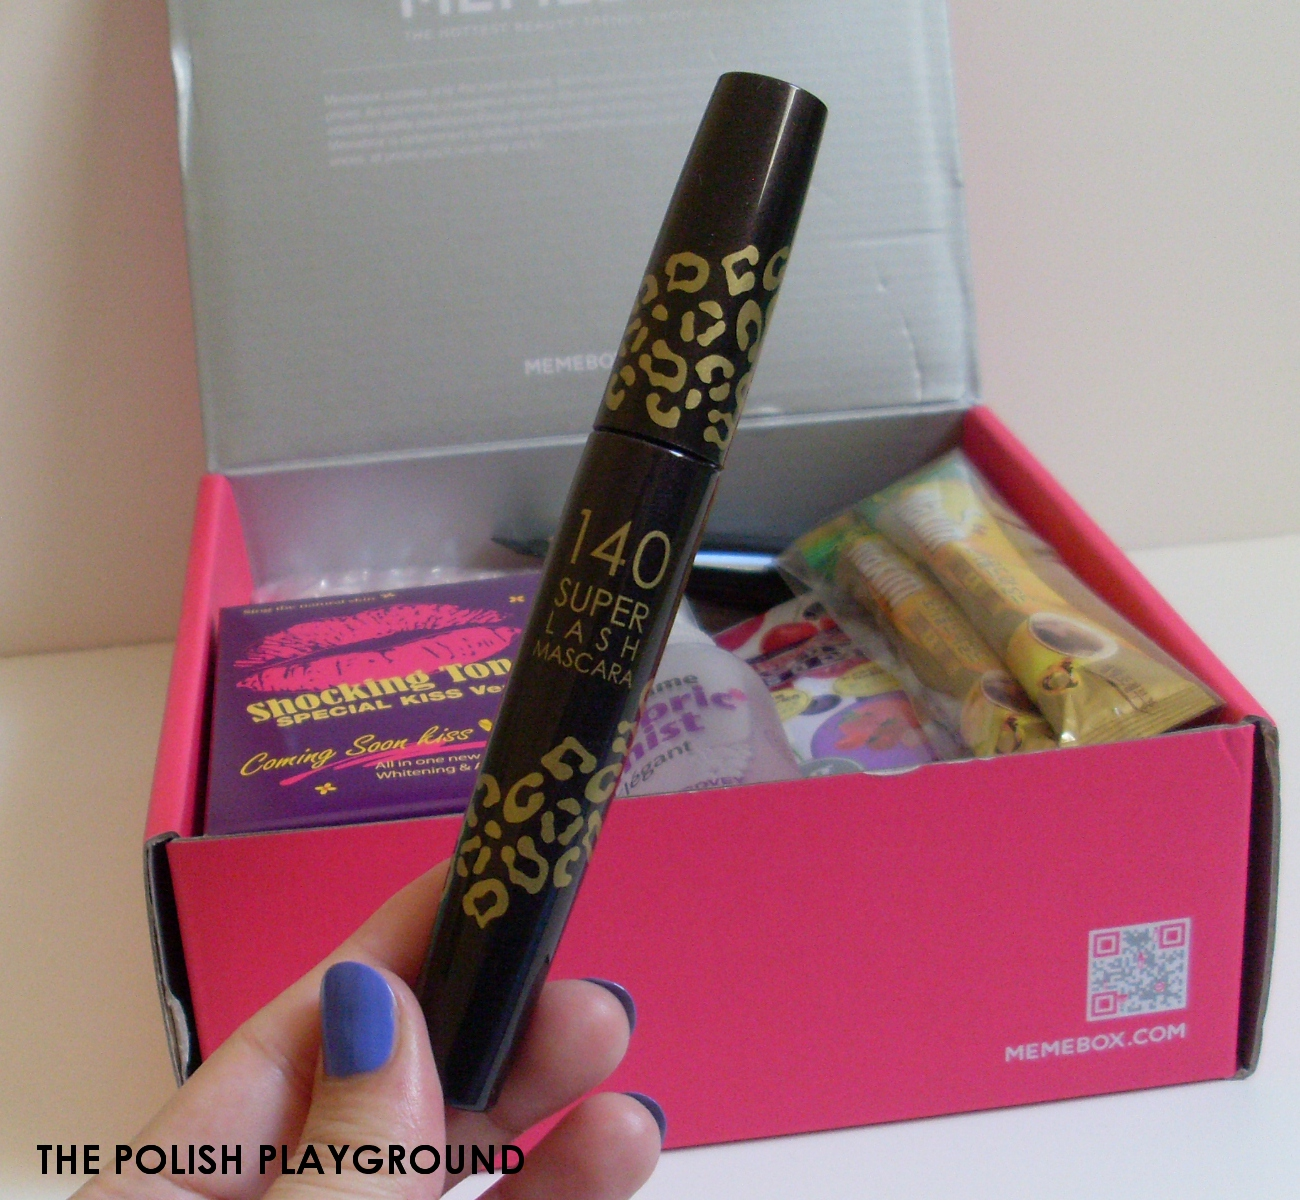 Memebox Office Essentials Unboxing - Hope Girl 140 Super Lash Mascara